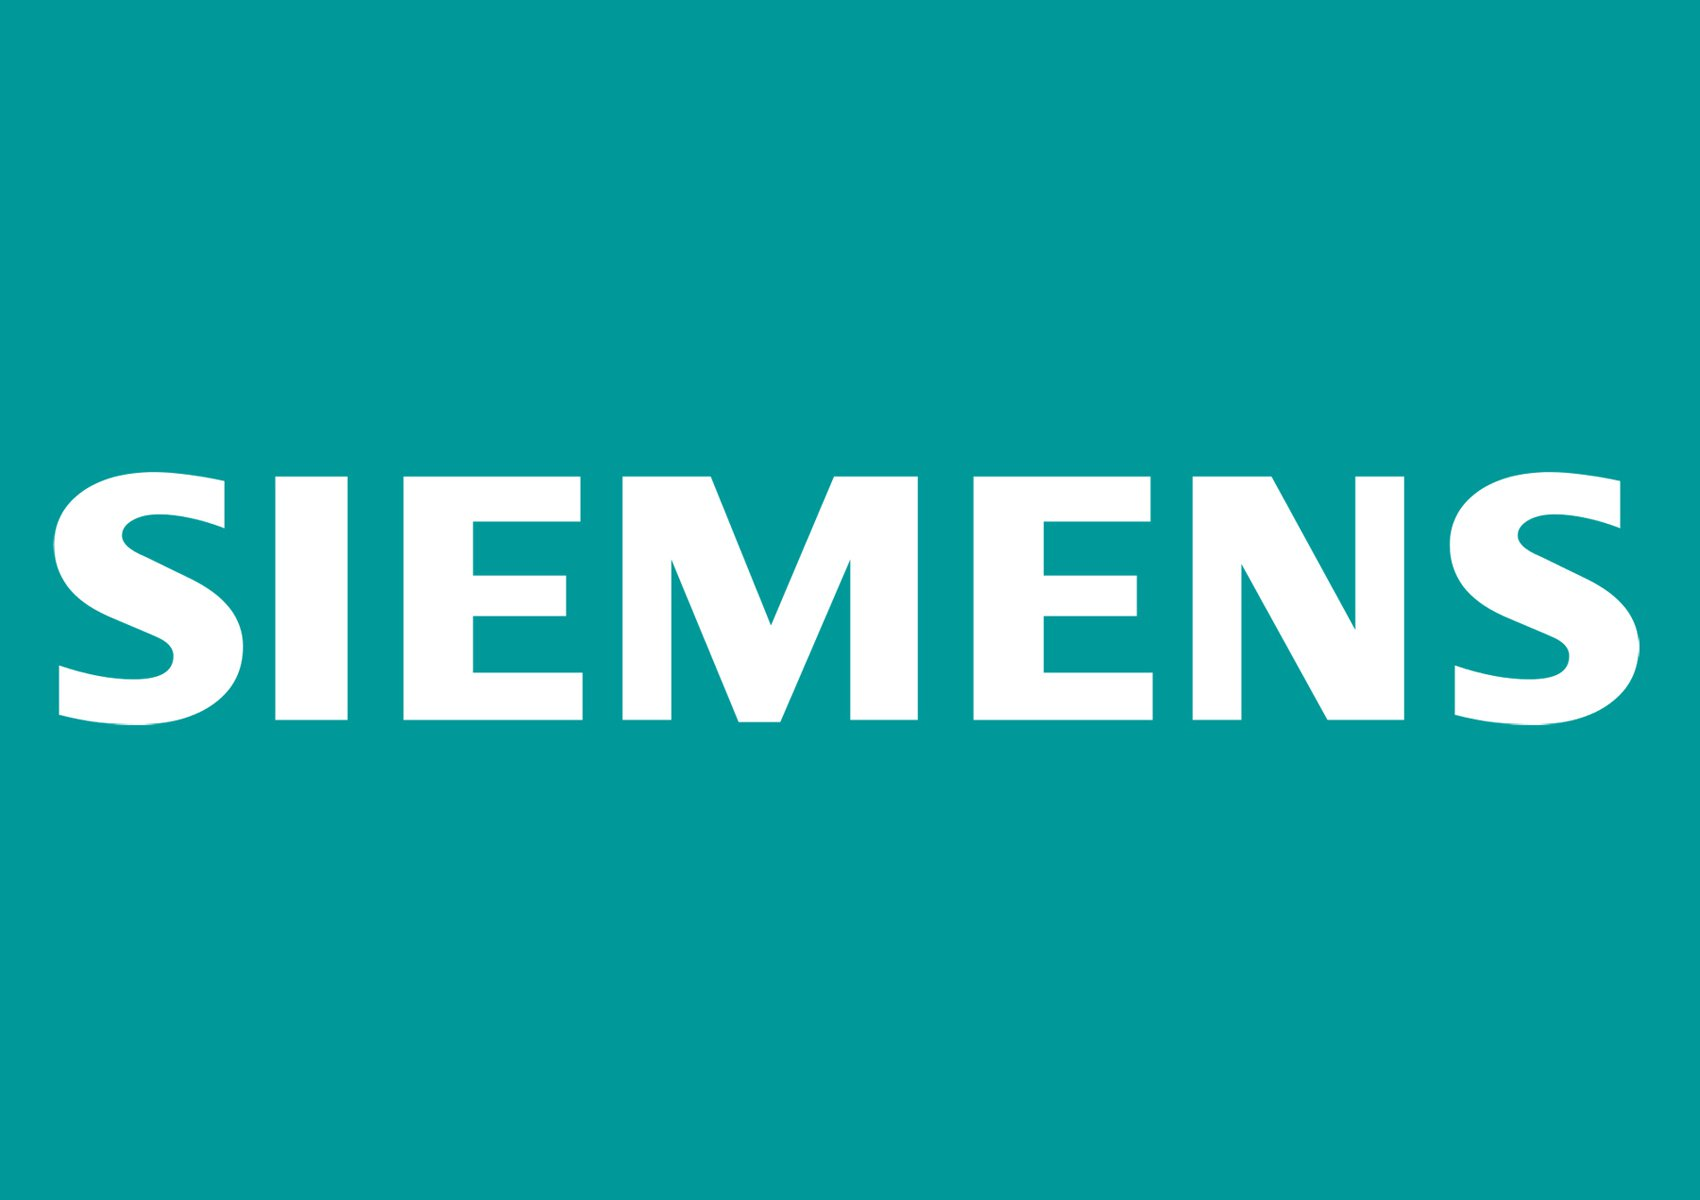 Siemens Logo, Siemens Symbol, Meaning, History and Evolution